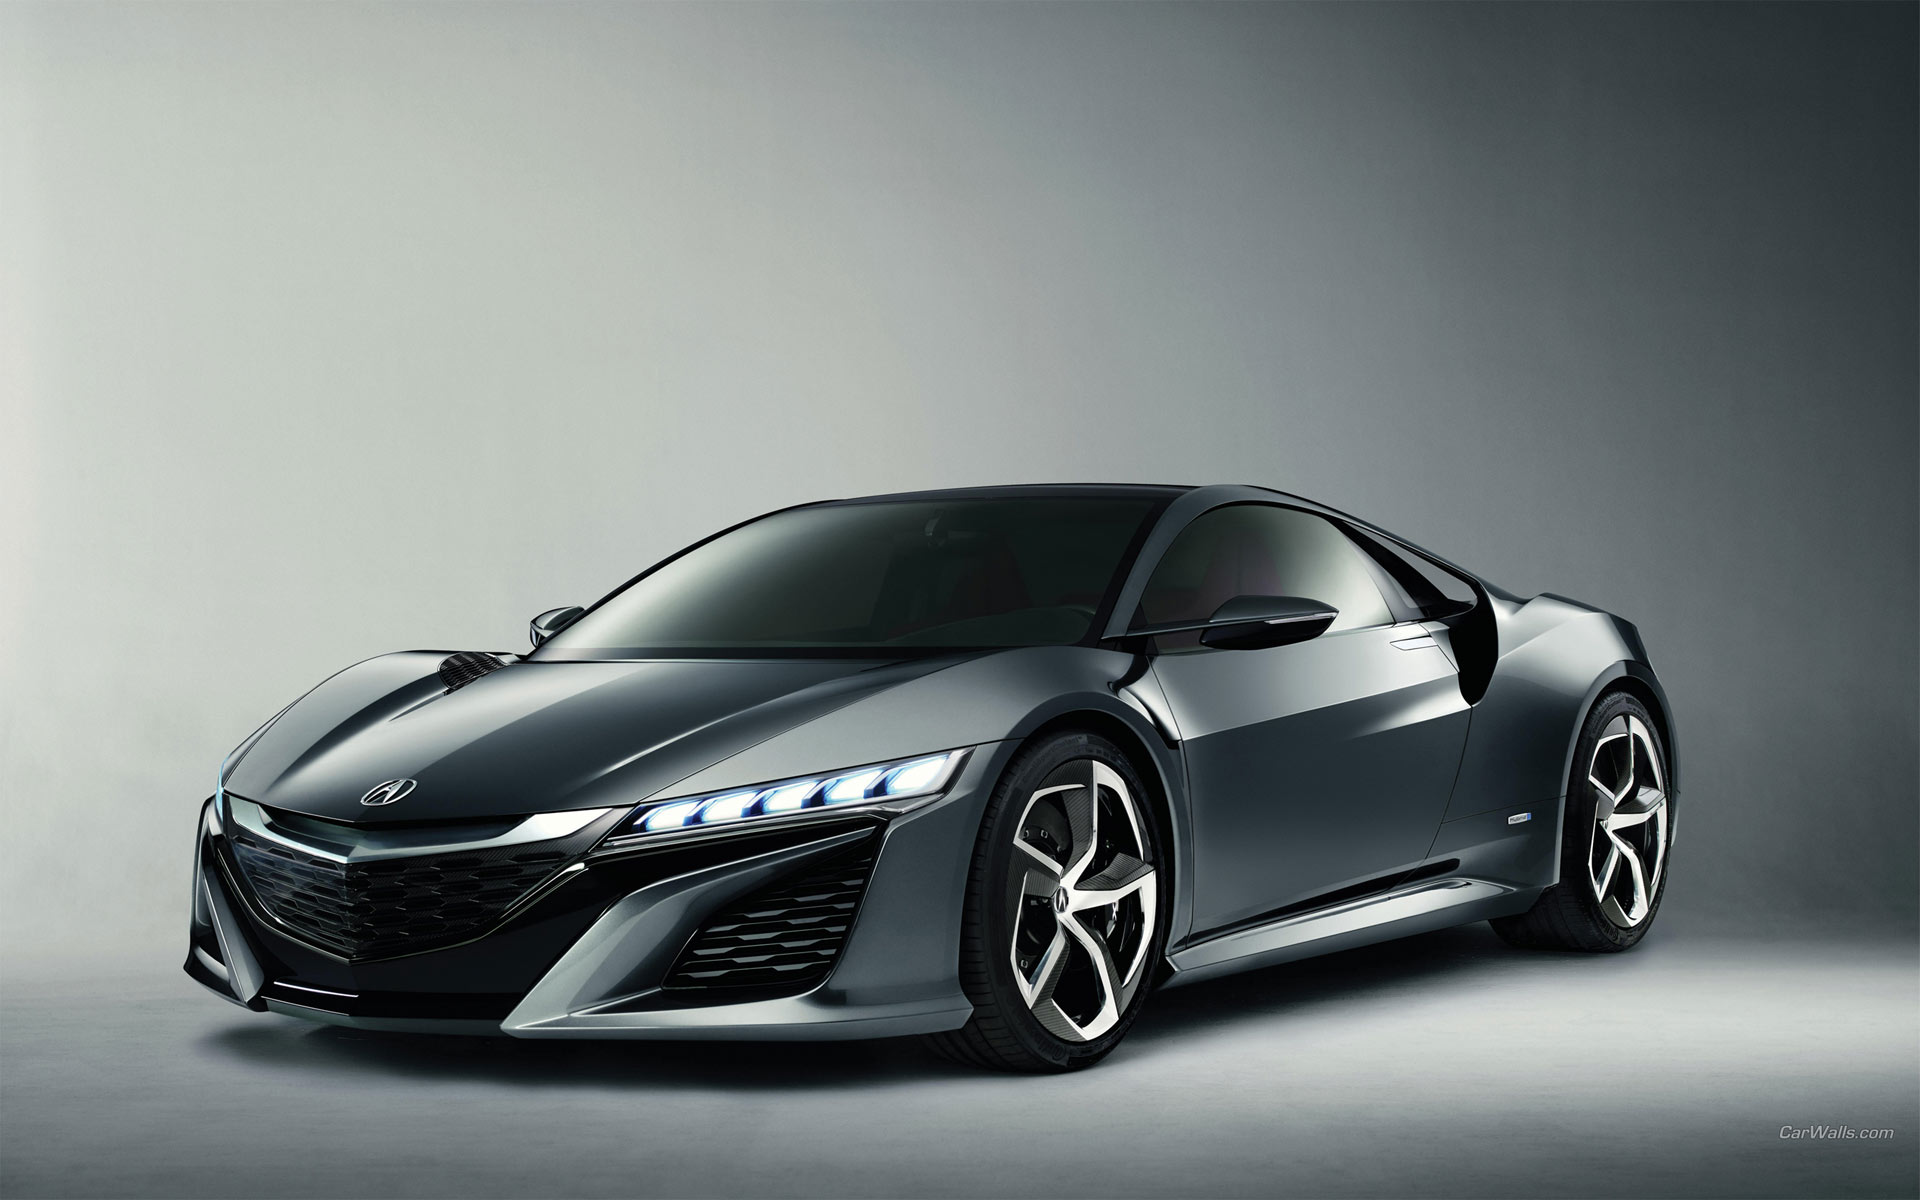 acura 2013 nsx Acura NSX Concept 2013 Wallpapers